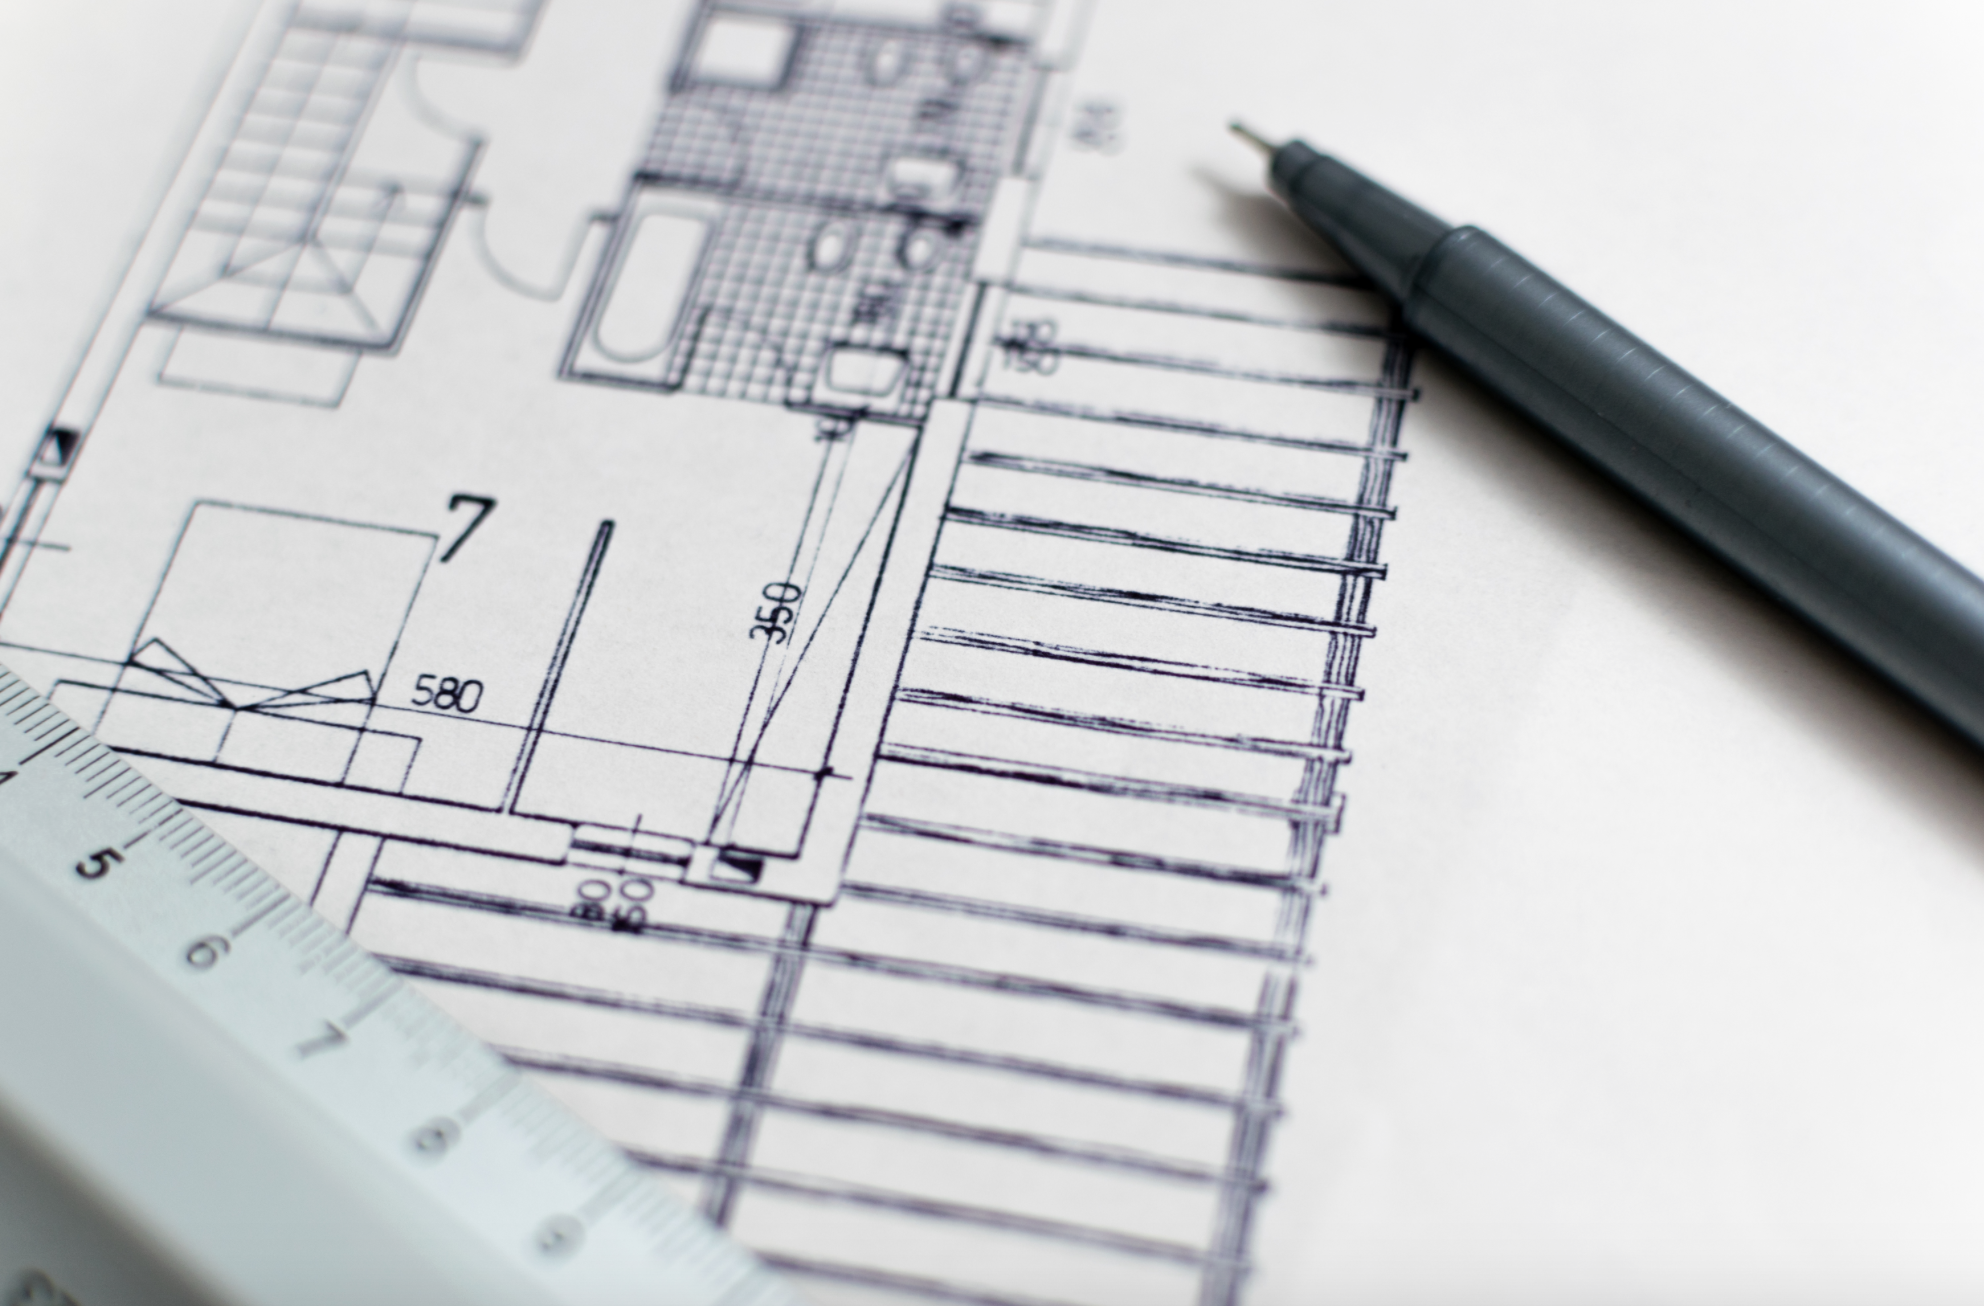 PLANNING PERMISSION - We work closely with our architects who have a vast wealth of knowledge and experience in planning applications and procedures. If you require a new extension, loft conversion or full house build contact us to book a complimentary consultation.